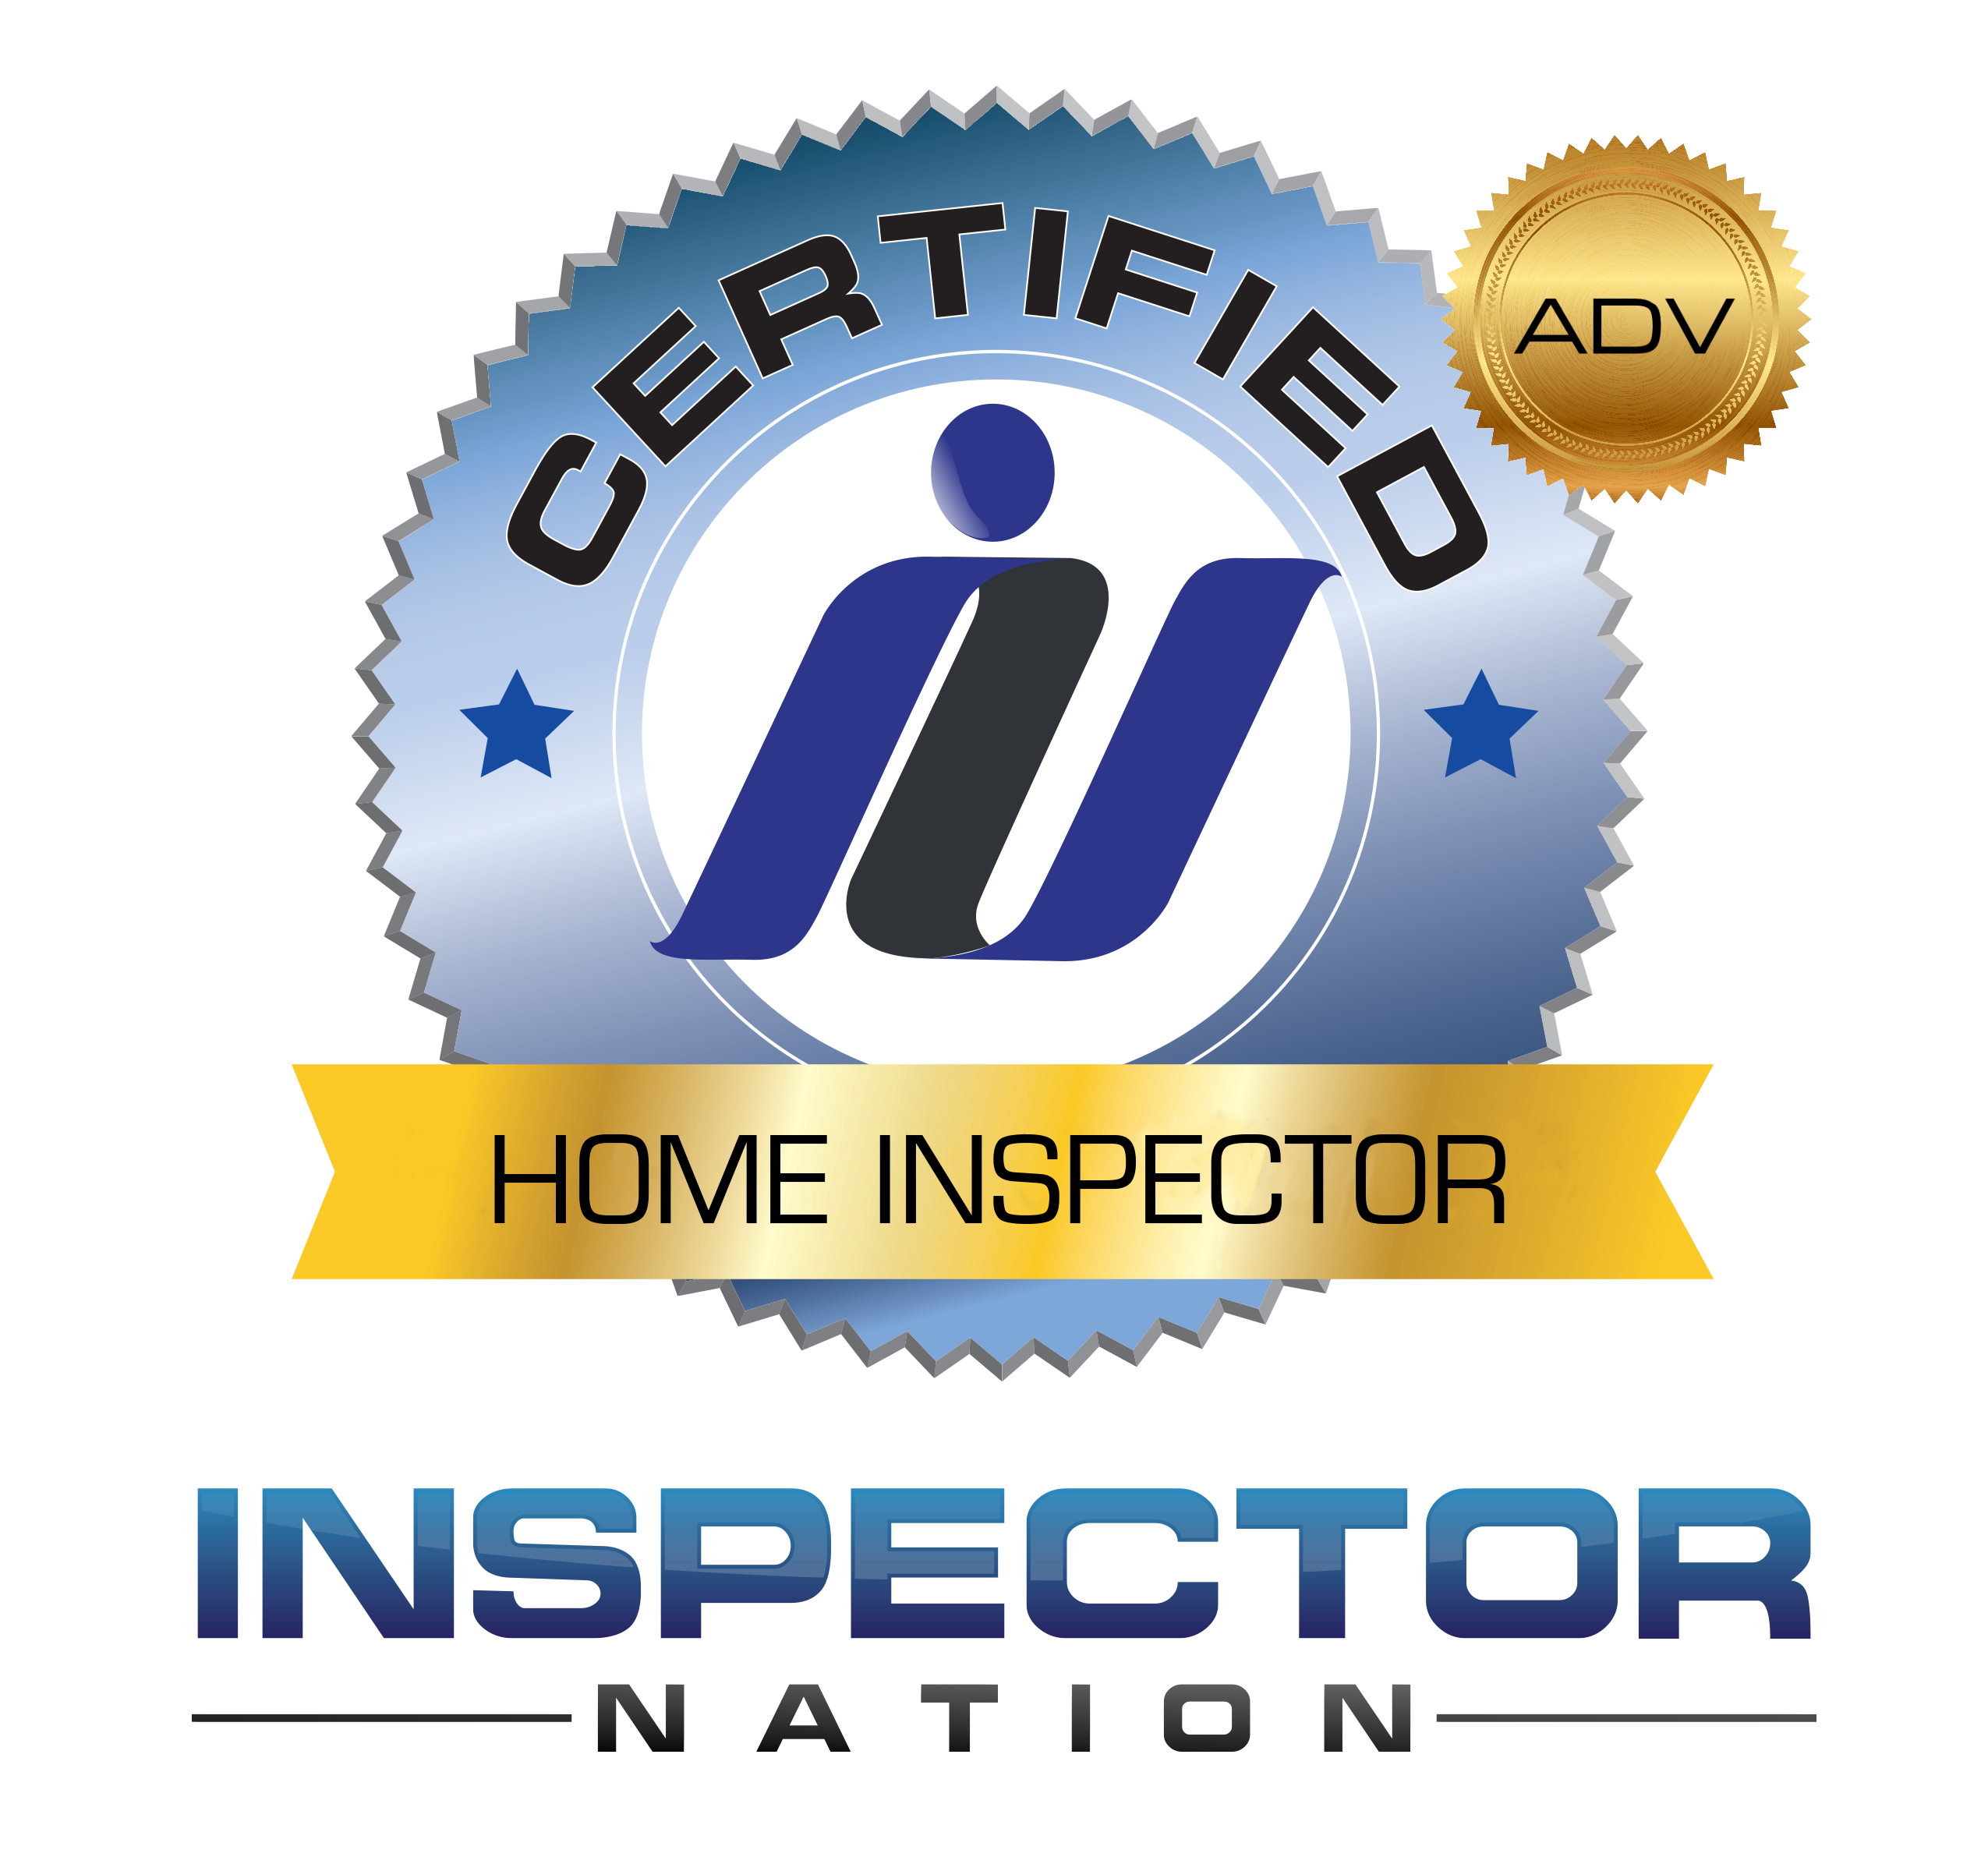 advanced  inspector nation certified home inspector badge emblem icon